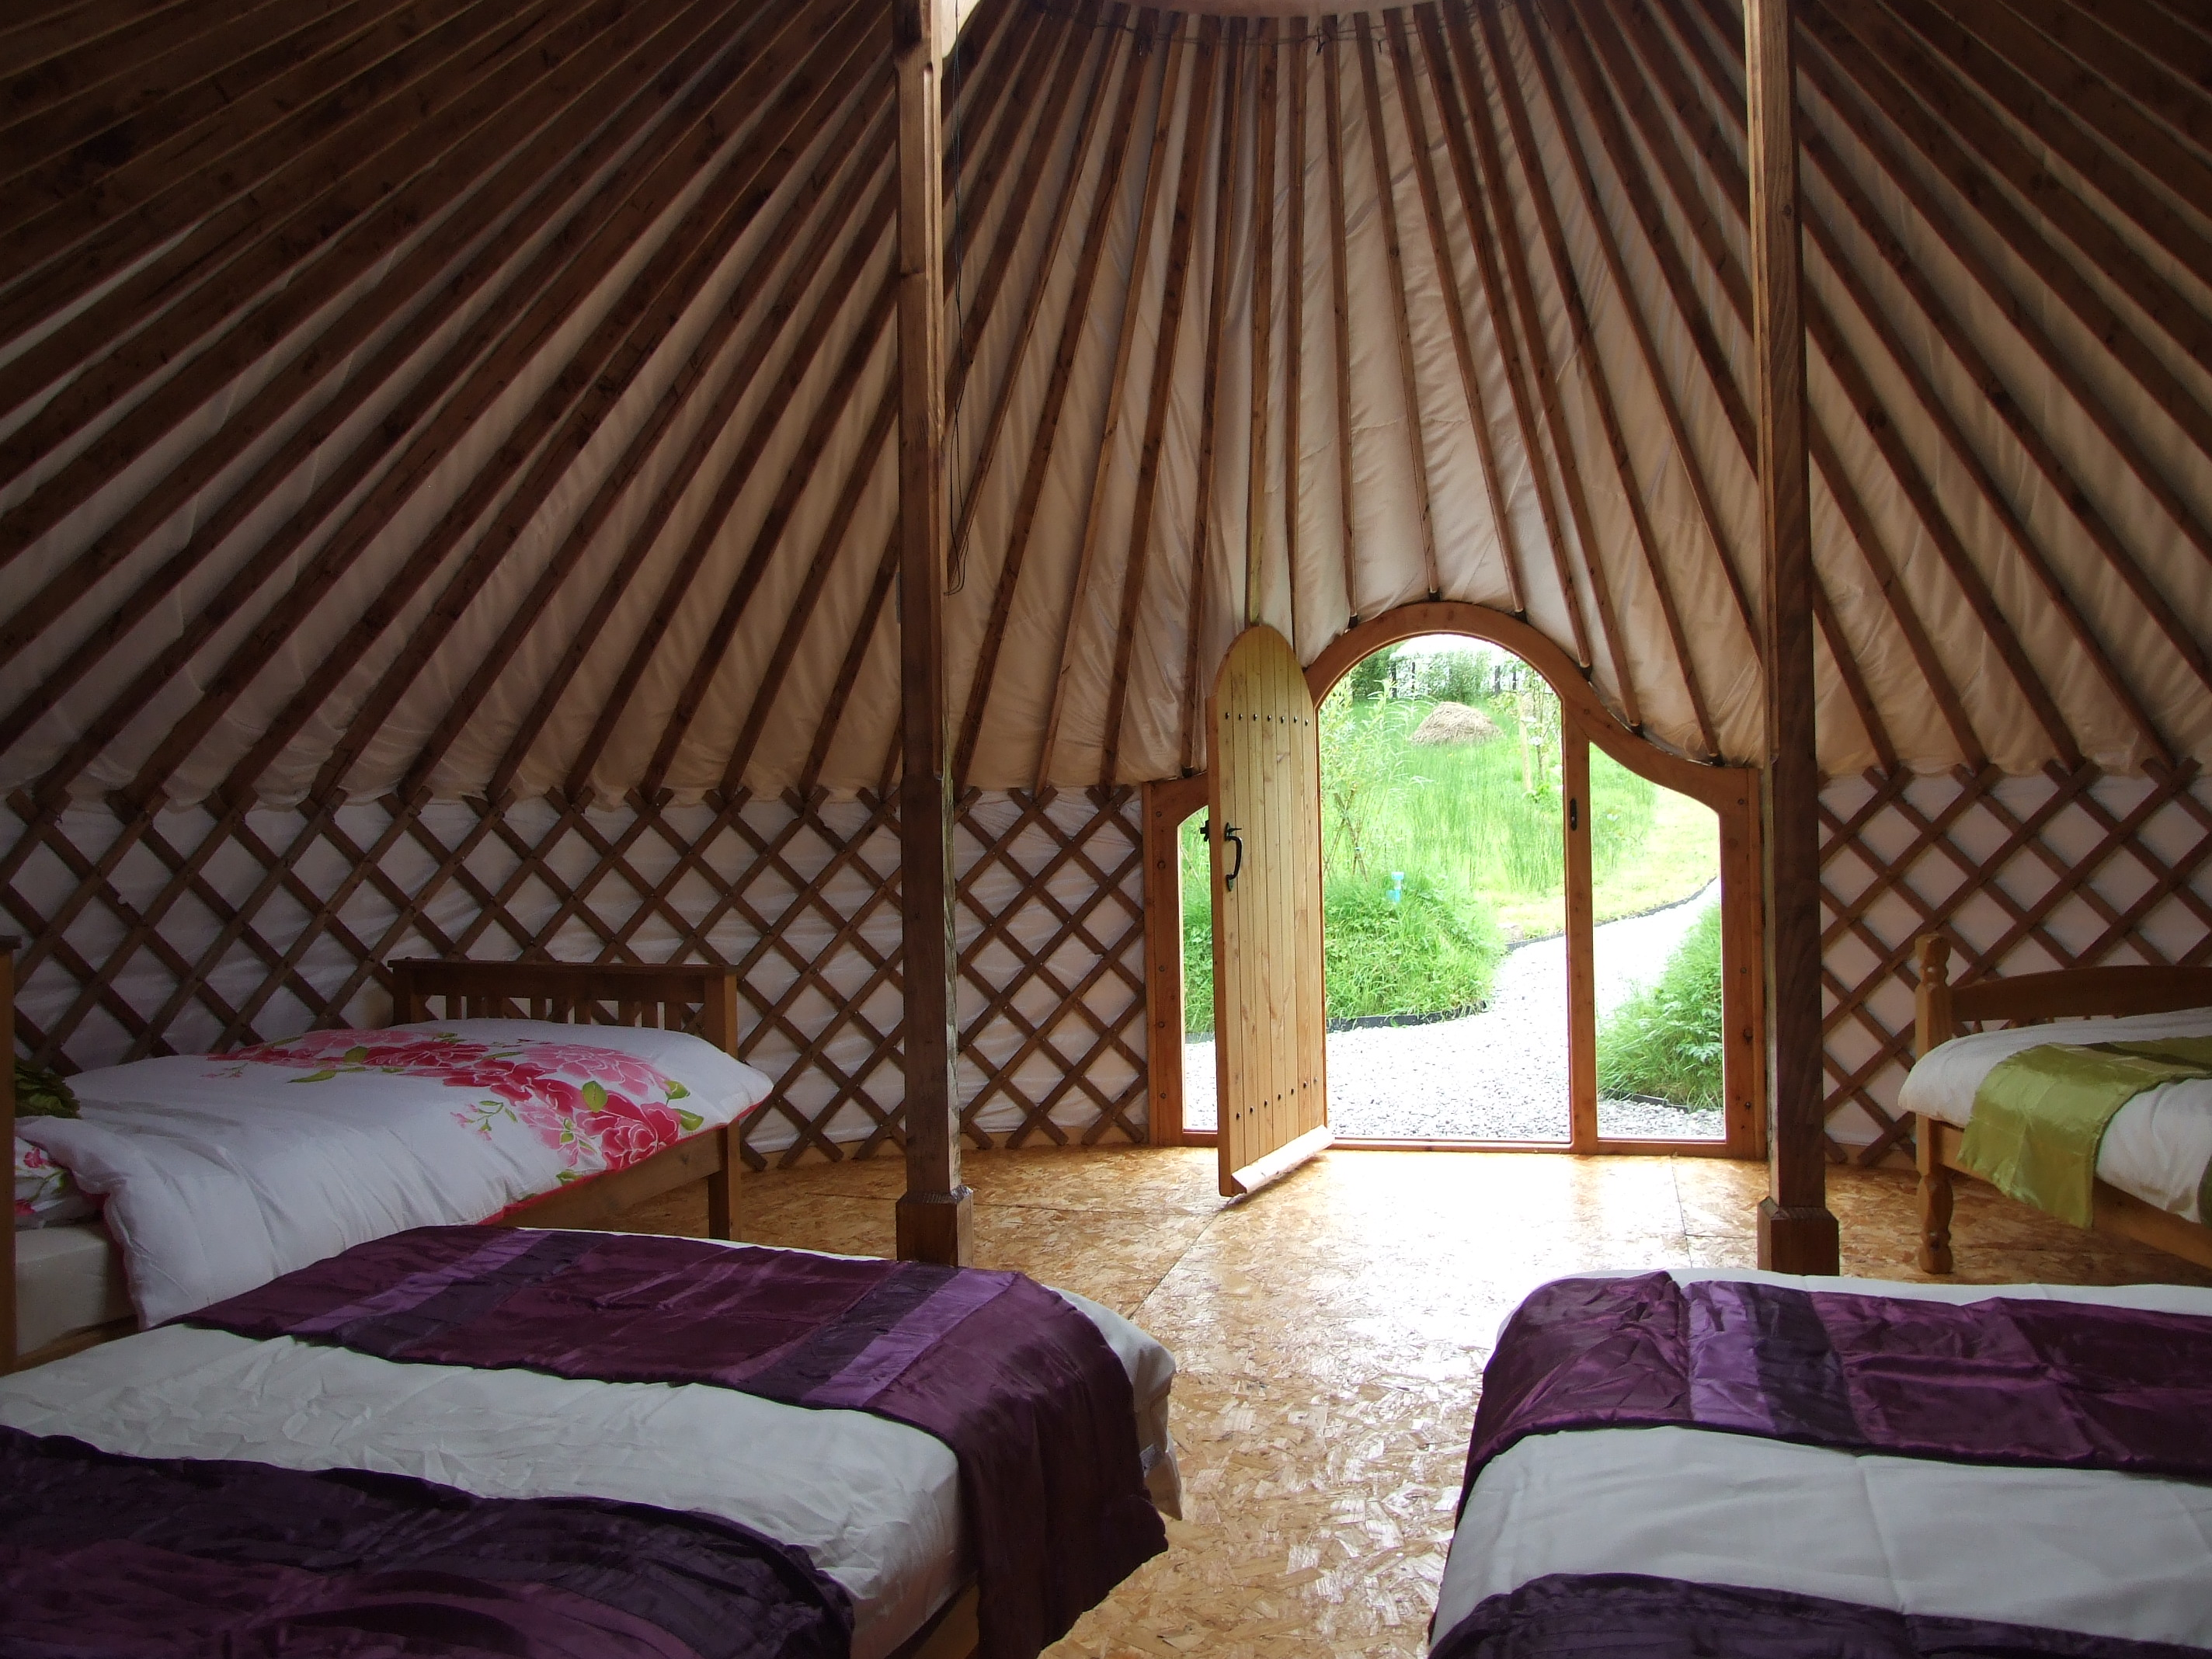 Glamping In Ireland. The Interior of Drift Wood Yurt. Made in Ireland